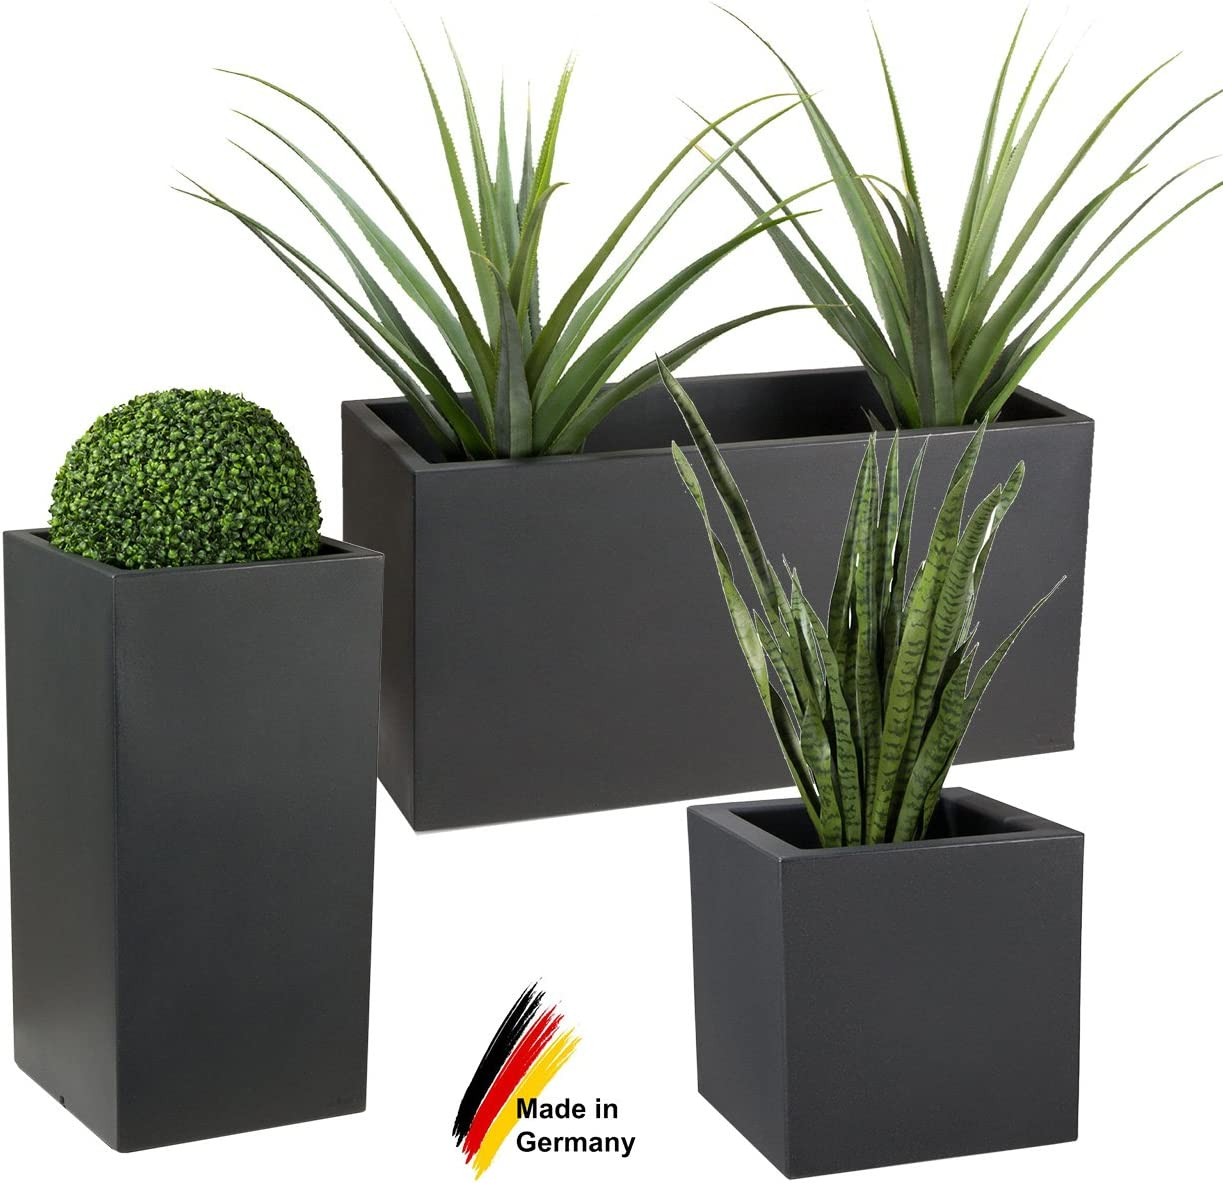 Available in Different Sizes Frost- and Weatherproof Suitable for Indoor /& Outdoor use Planters DECORAS Plastic Plant Troughs Premium Flower Pots Plant Pot Colour: Charcoal-Grey